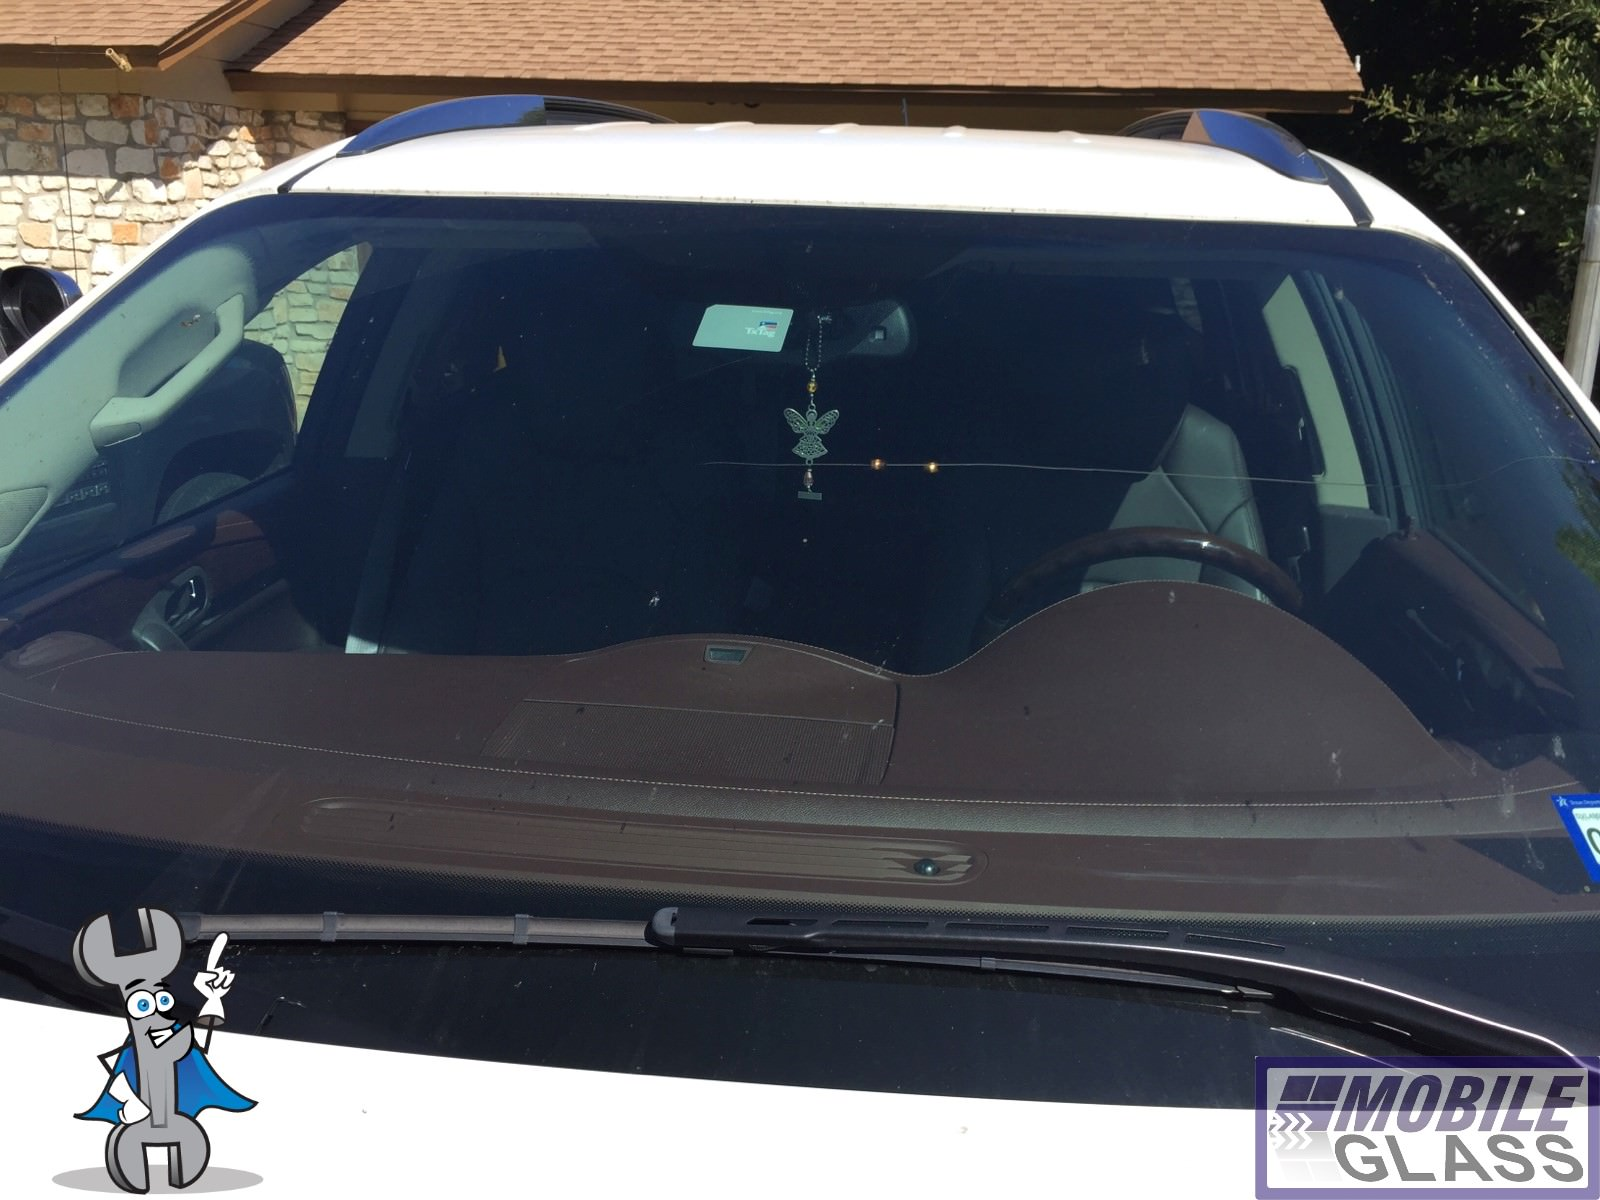 2014 buick enclave windshield repair round rock tx - Windshield Glass